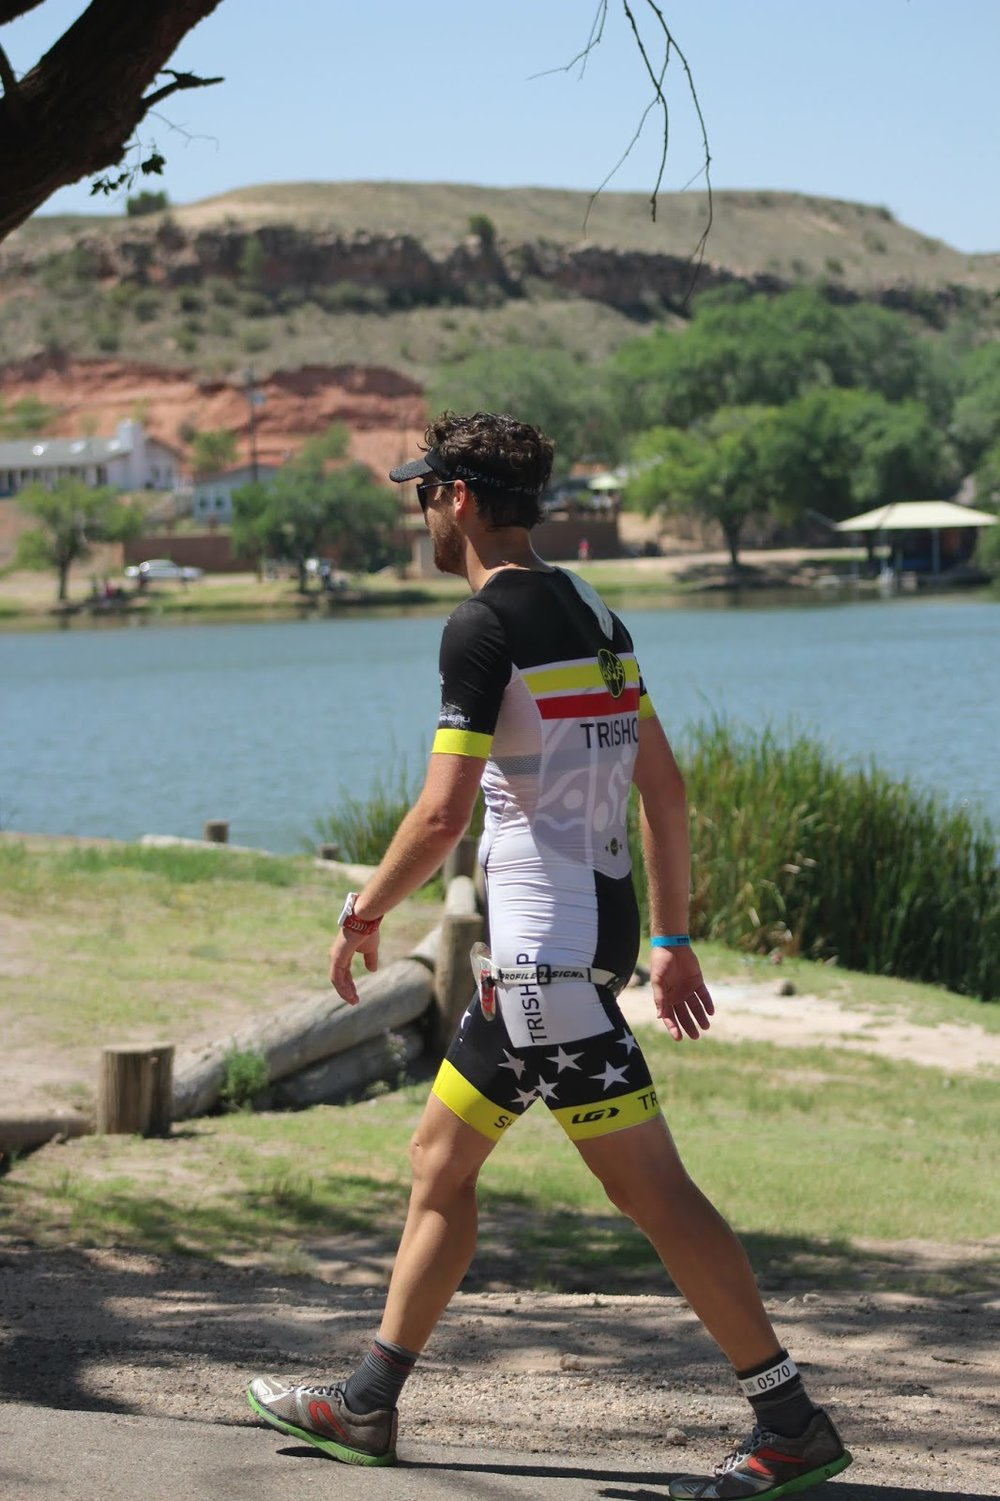 Coach_Terry_Wilson_Pursuit_of_The_Perfect_Race_IRONMAN_Buffalo_Springs_Lake_70.3_Avram_Carter_Walk.JPG